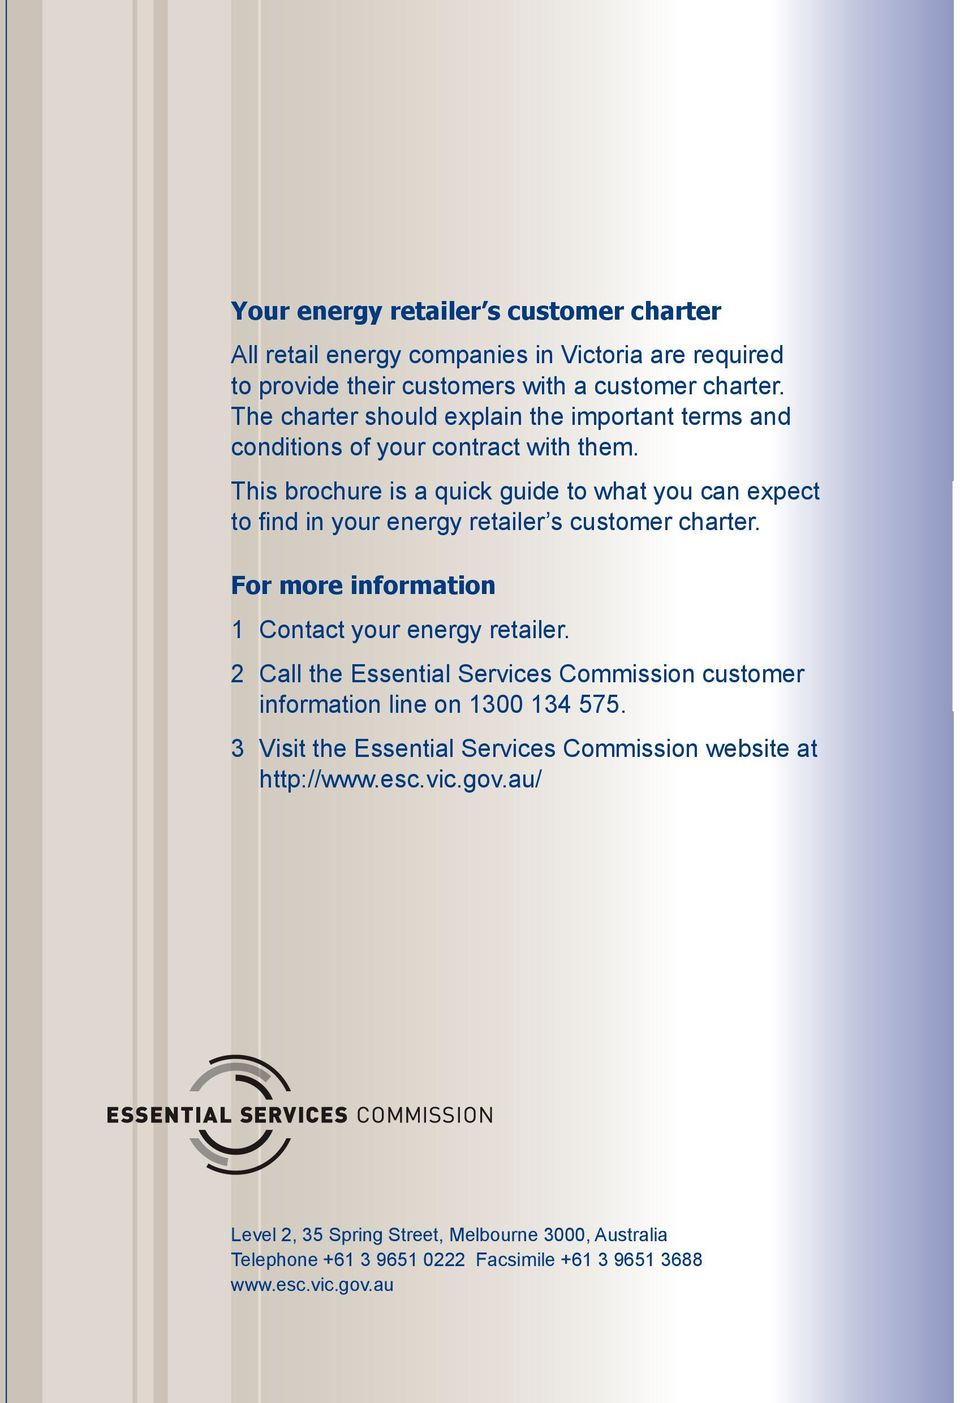 This brochure is a quick guide to what you can expect to find in your energy retailer s customer charter. For more information 1 Contact your energy retailer.